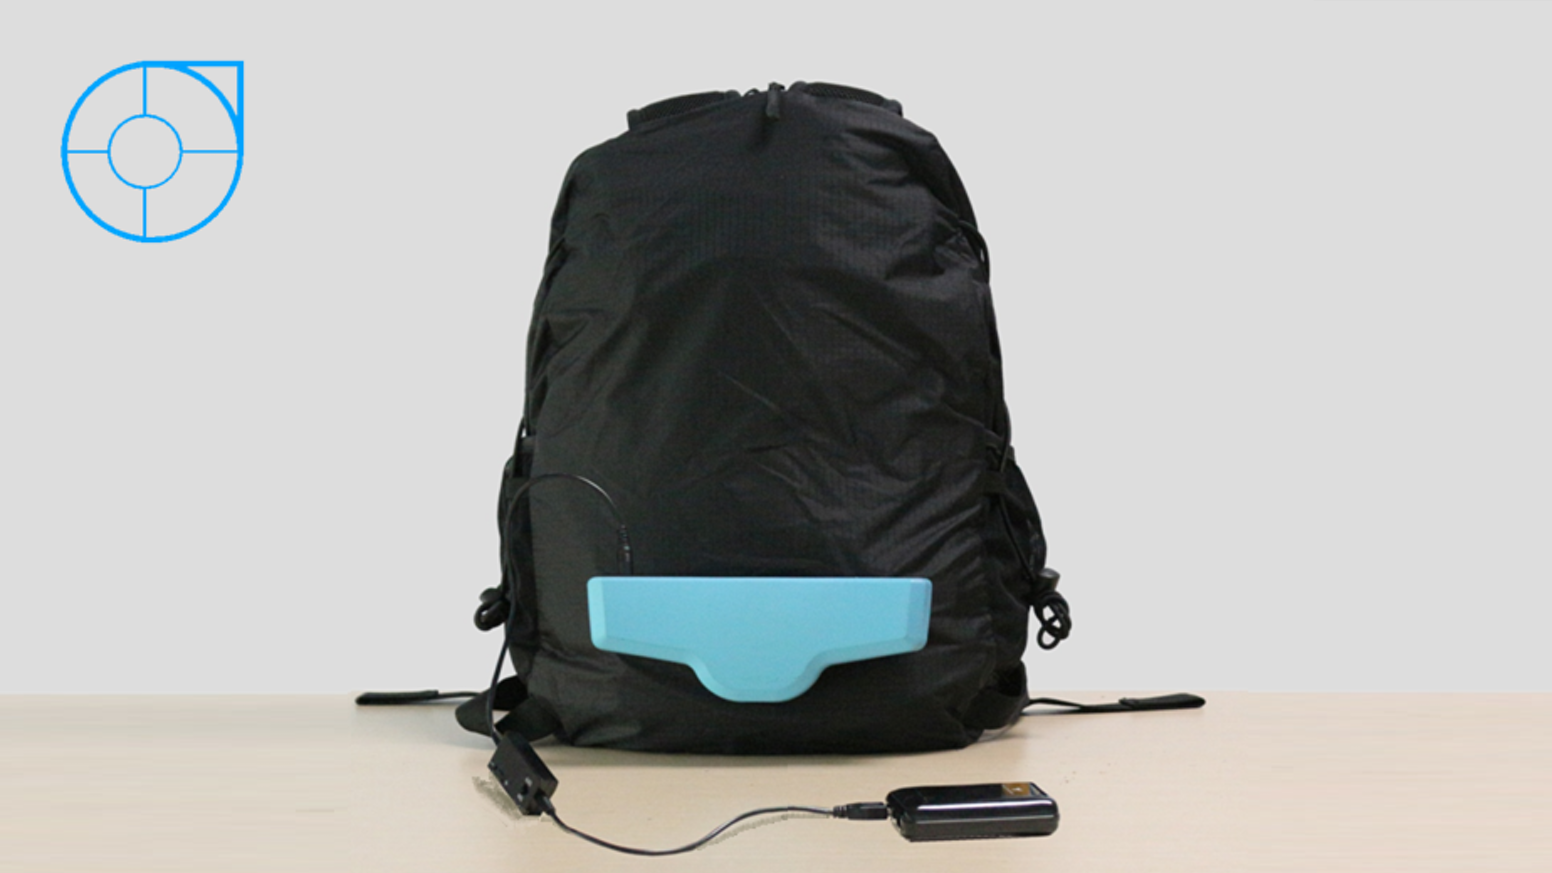 Ventila: A NEW VENTILATION FAN For Backpacks & More by